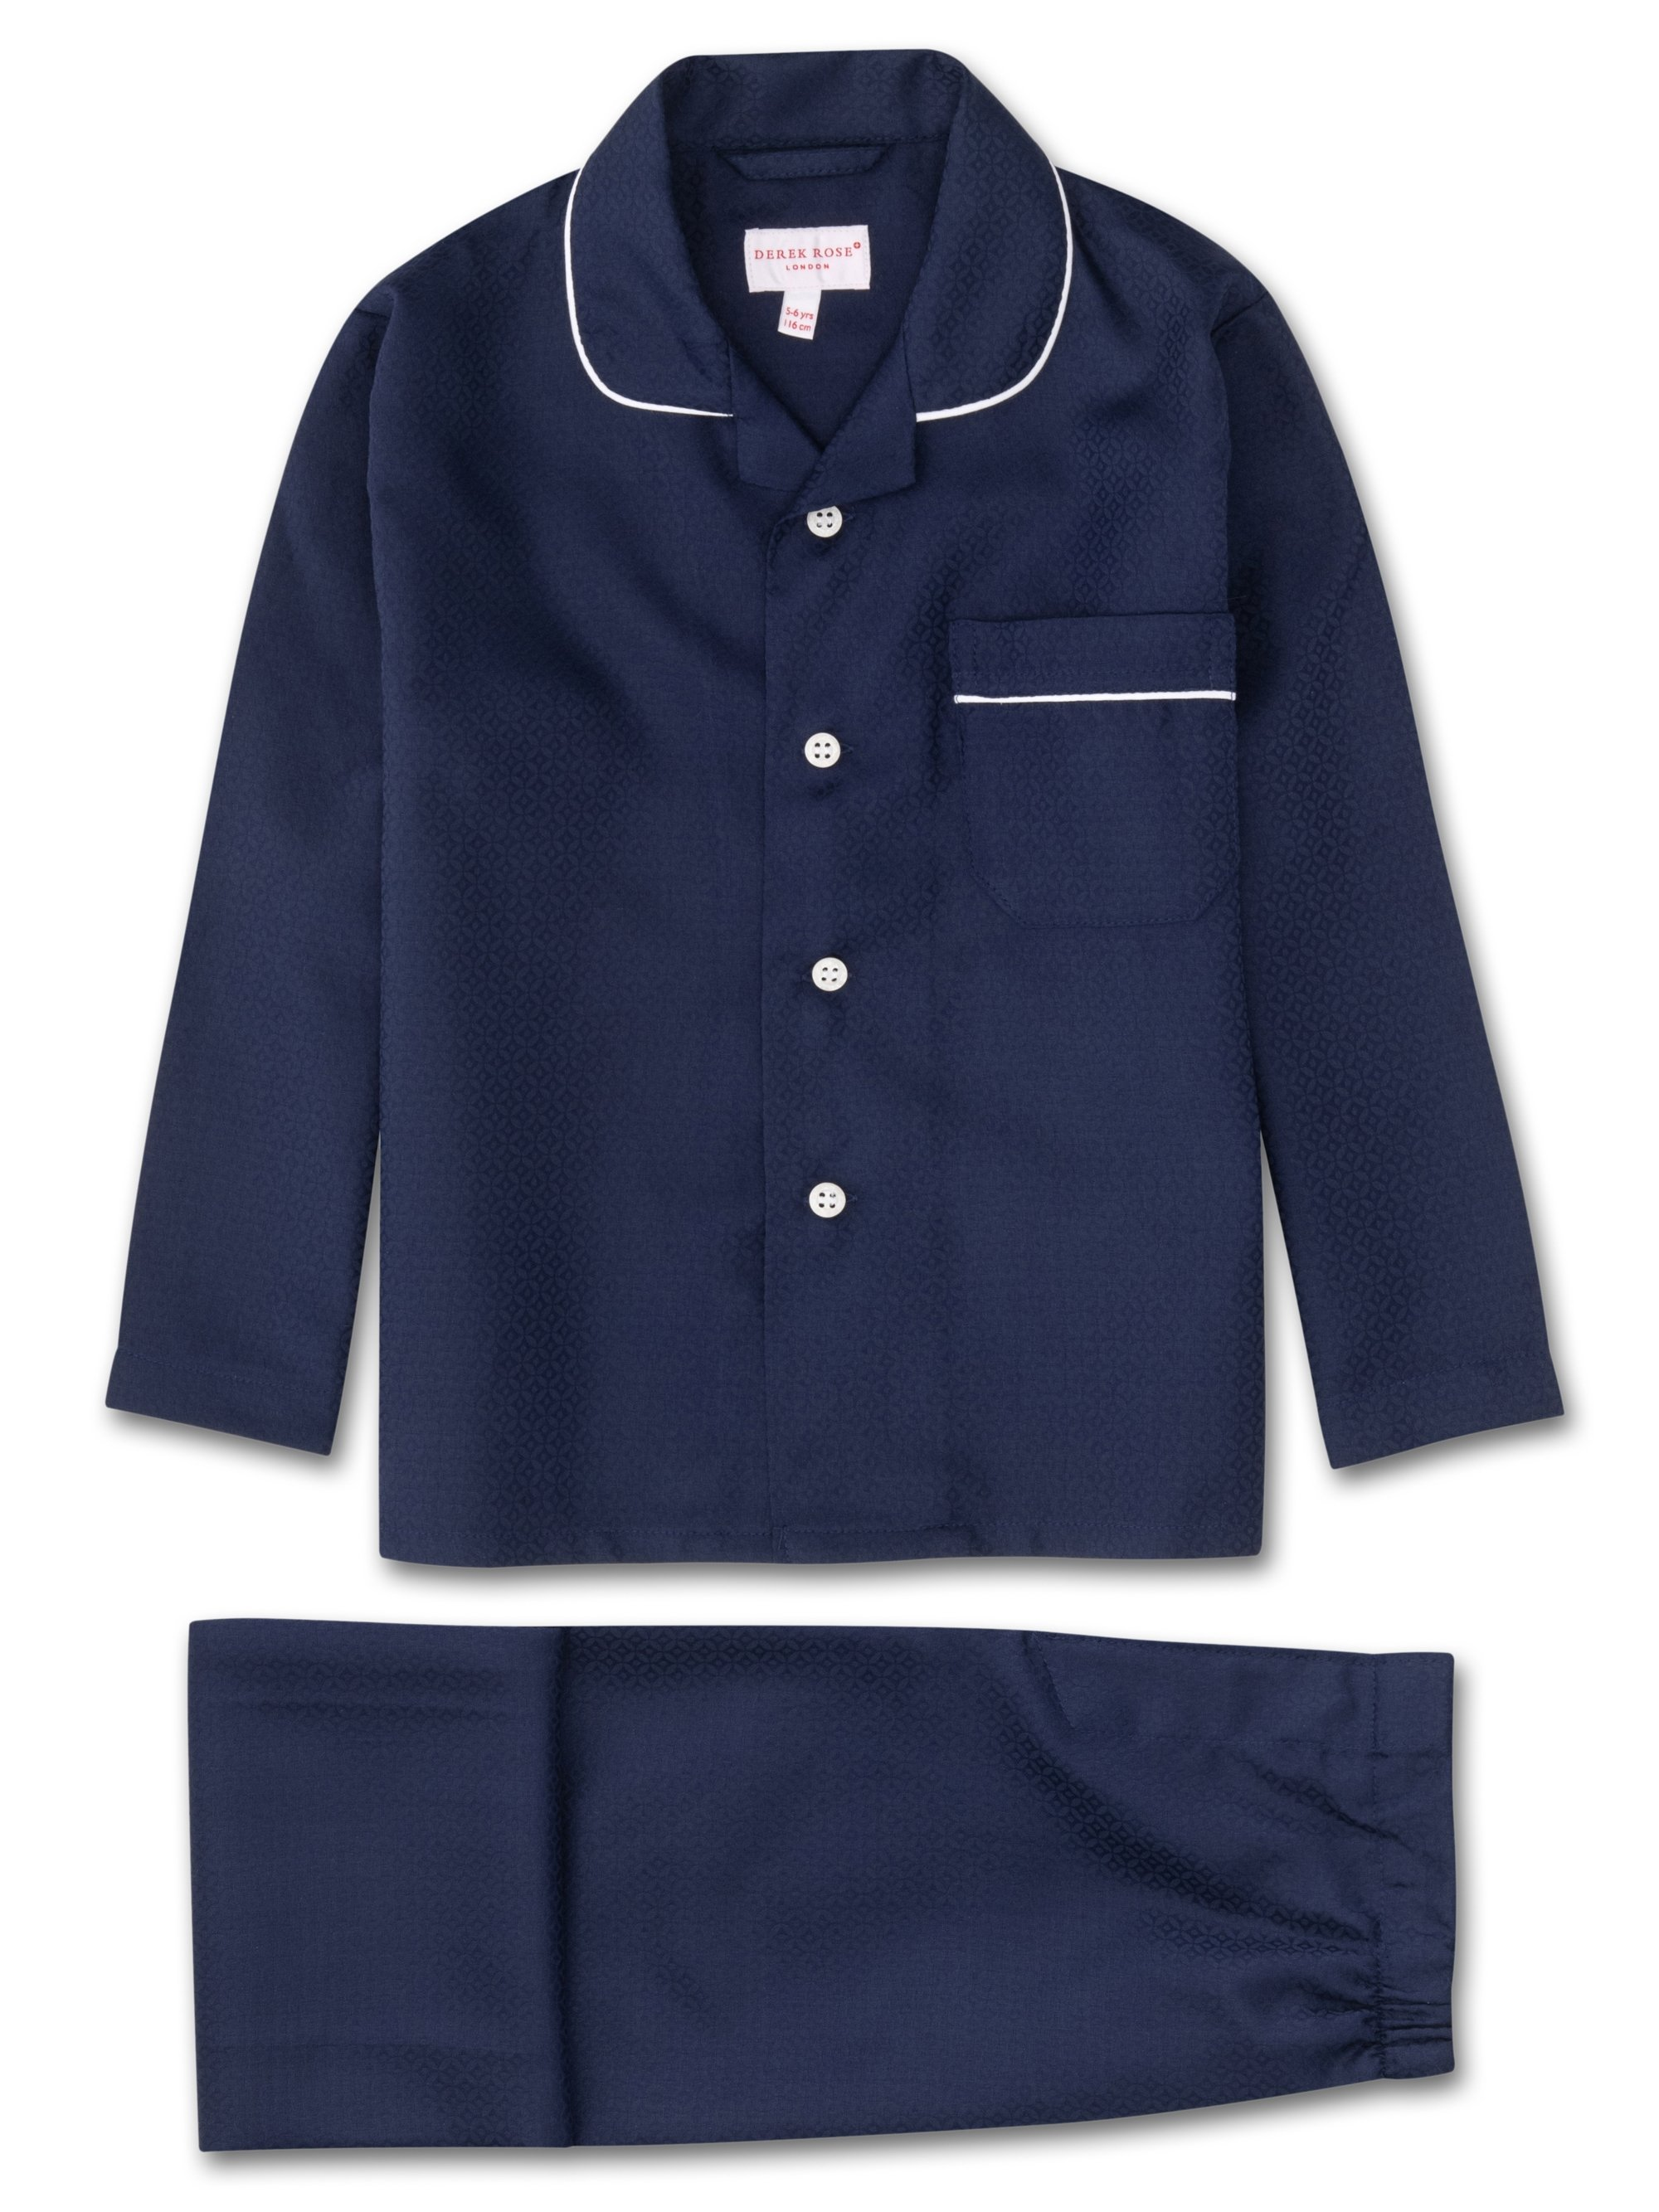 Kids' Pyjamas Lombard 6 Cotton Jacquard Navy